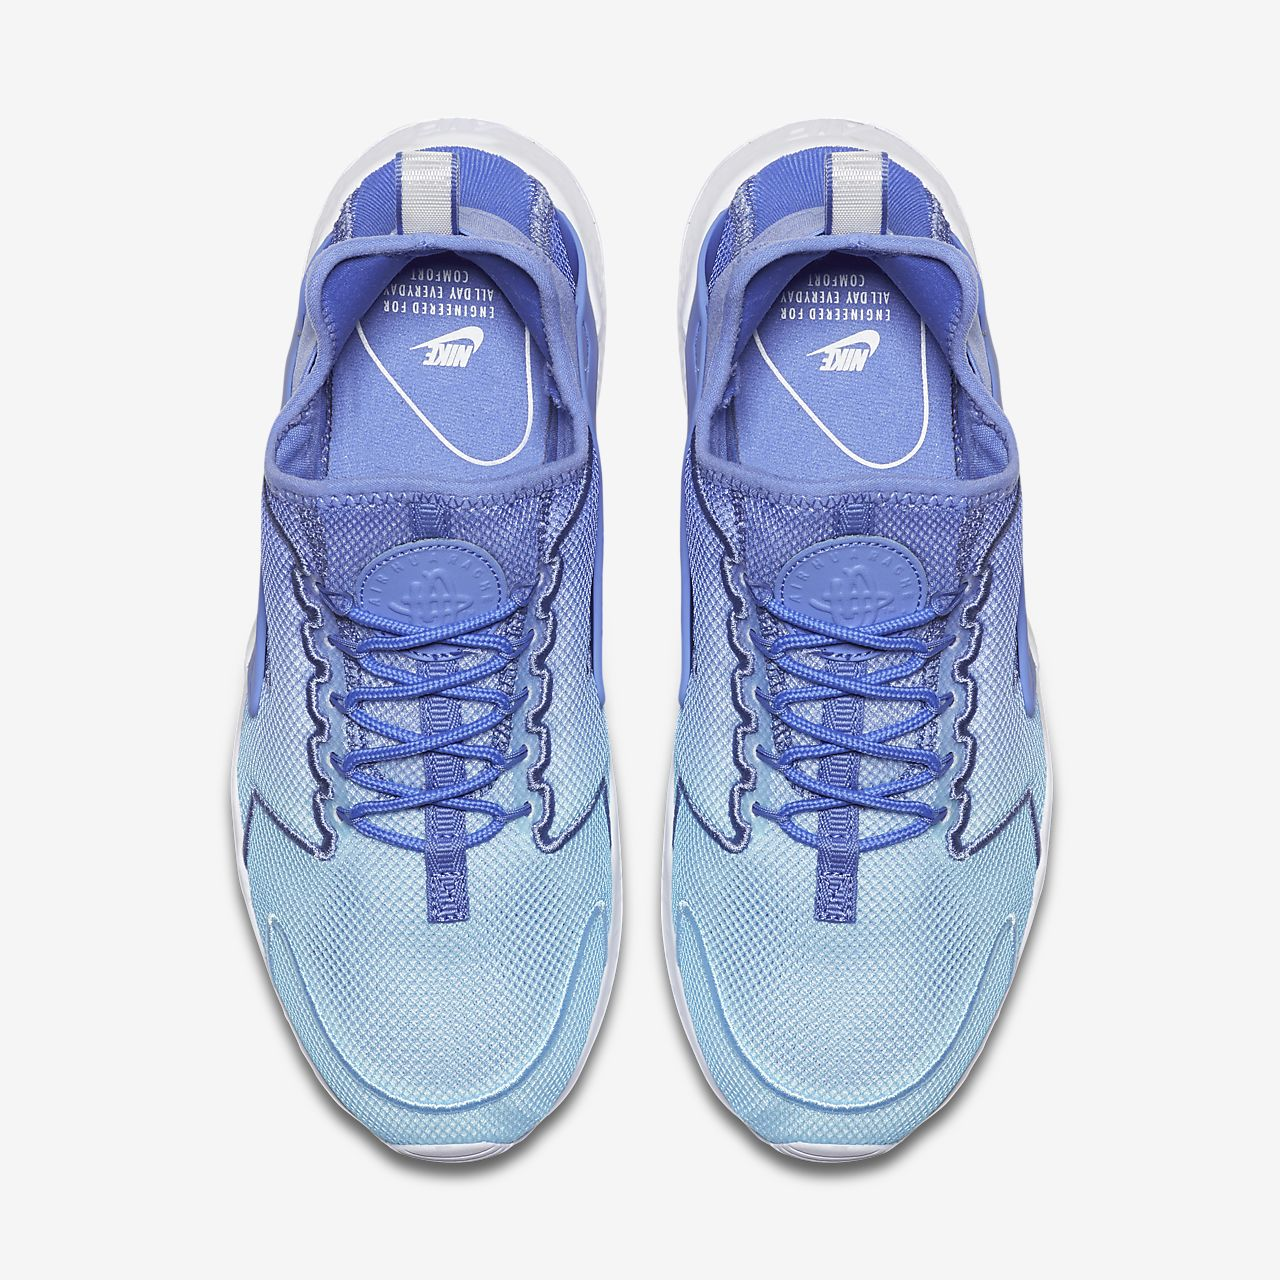 nike huarache ultra breathe blue nz